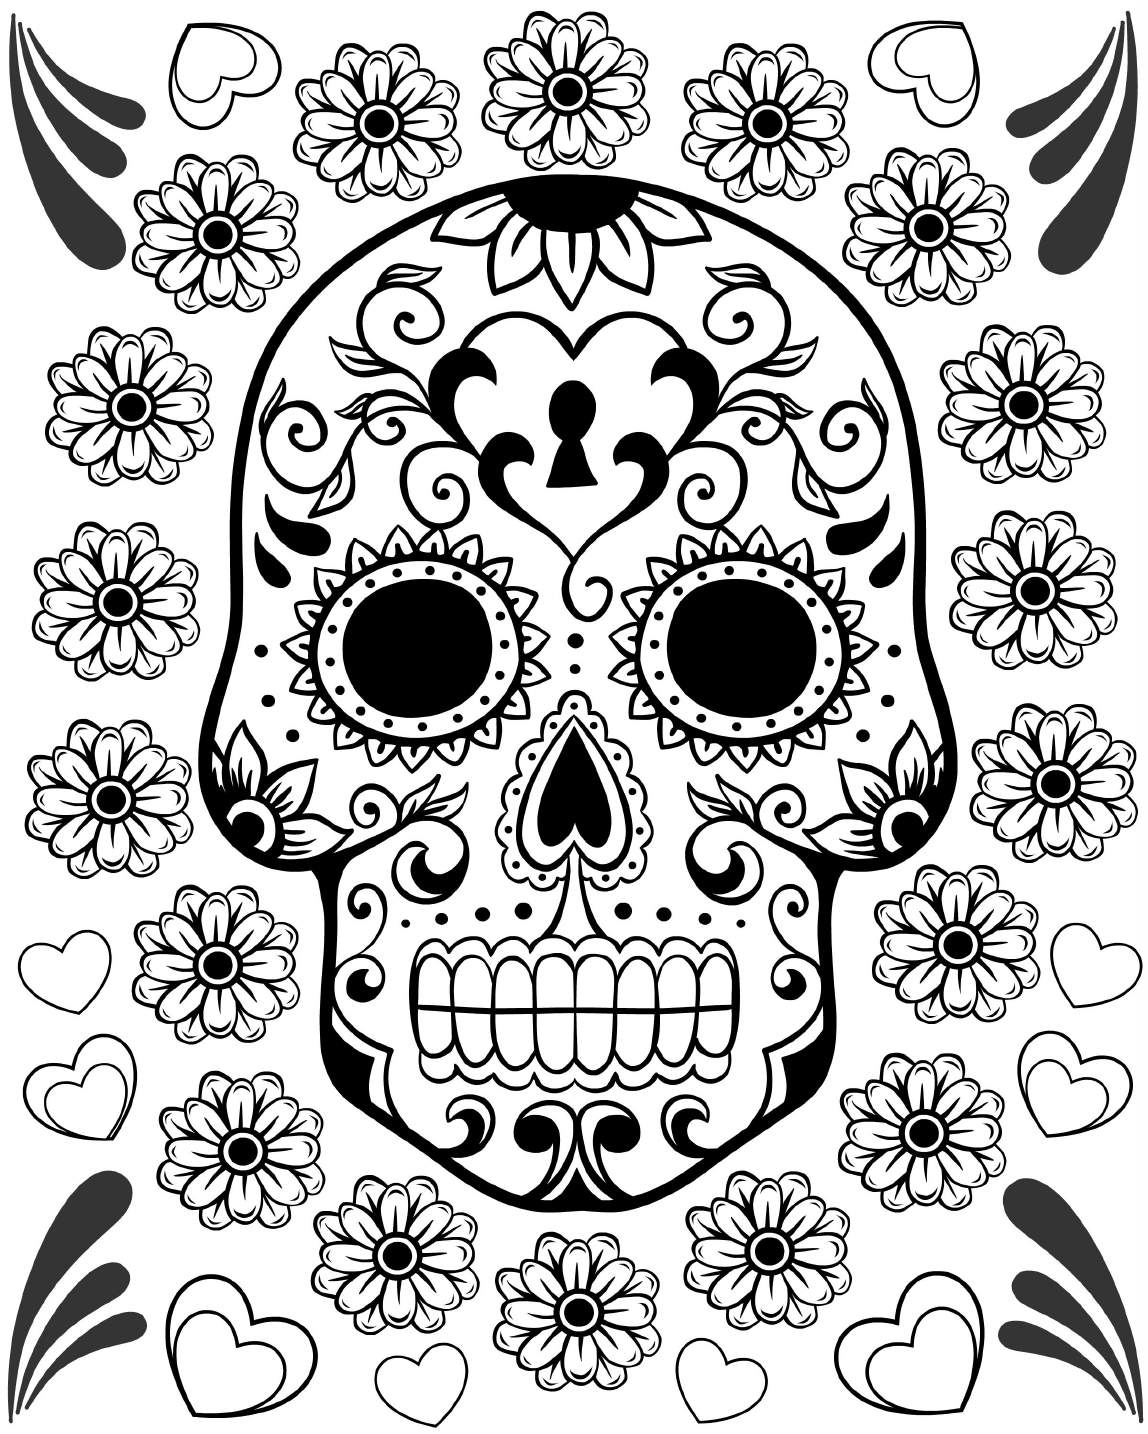 day of the dead skull coloring page day of the dead history and free sugar skulls coloring pages day of coloring the dead skull page